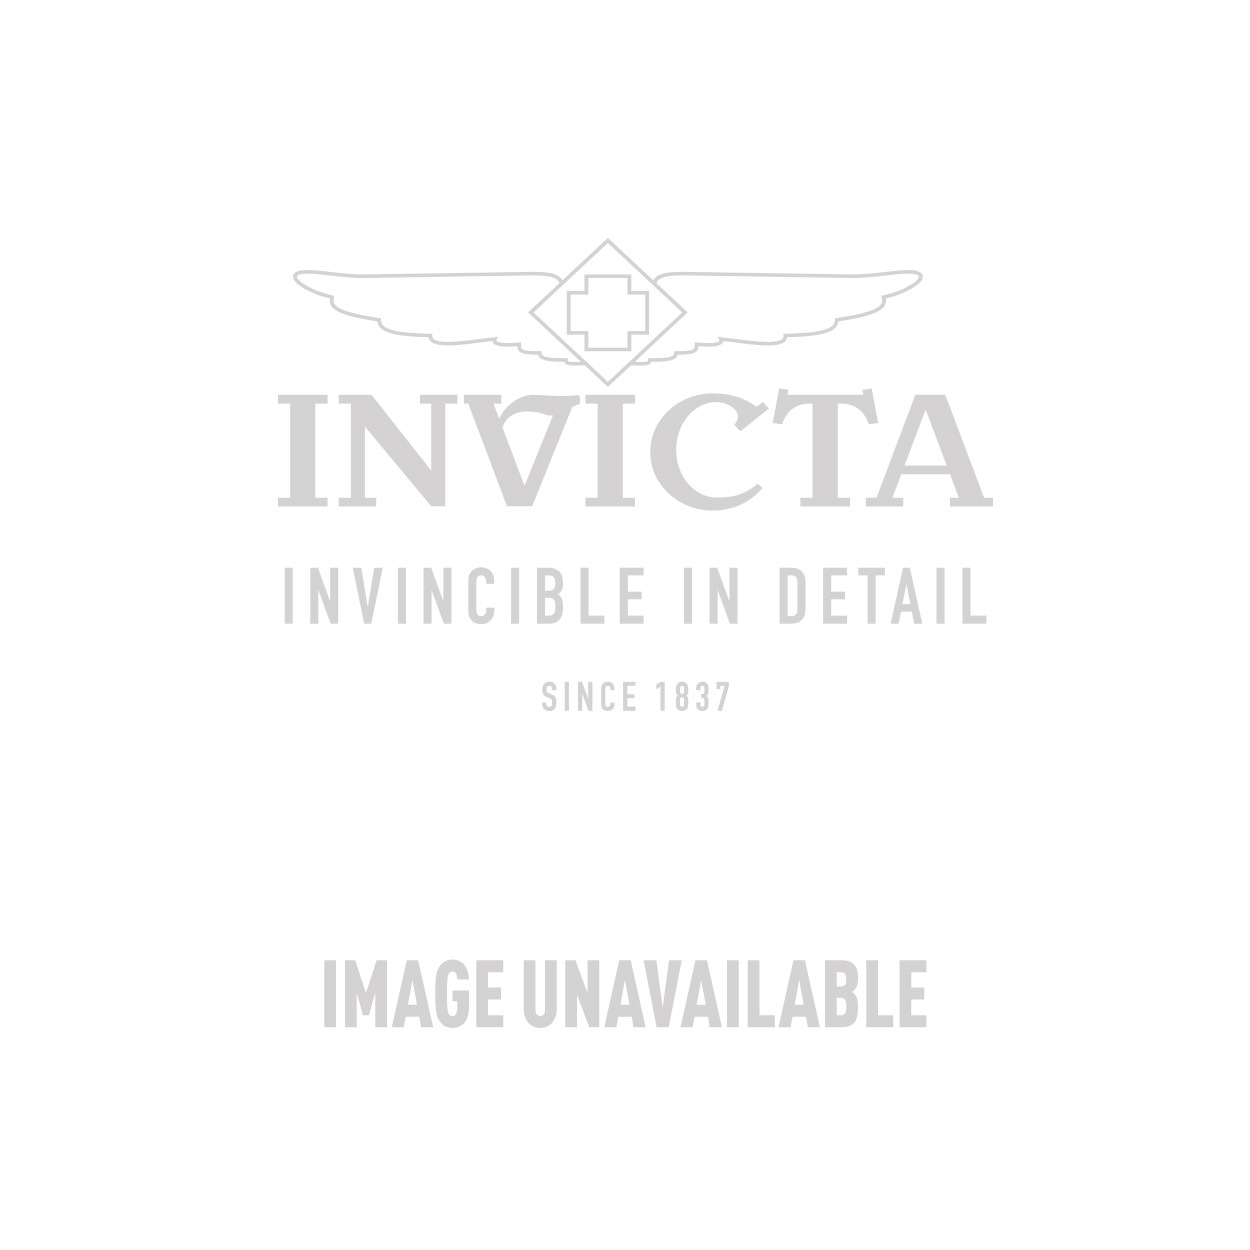 Invicta Bolt Thunderbolt Swiss Made Quartz Watch - Gold, Blue case with Gold tone Stainless Steel band - Model 21361